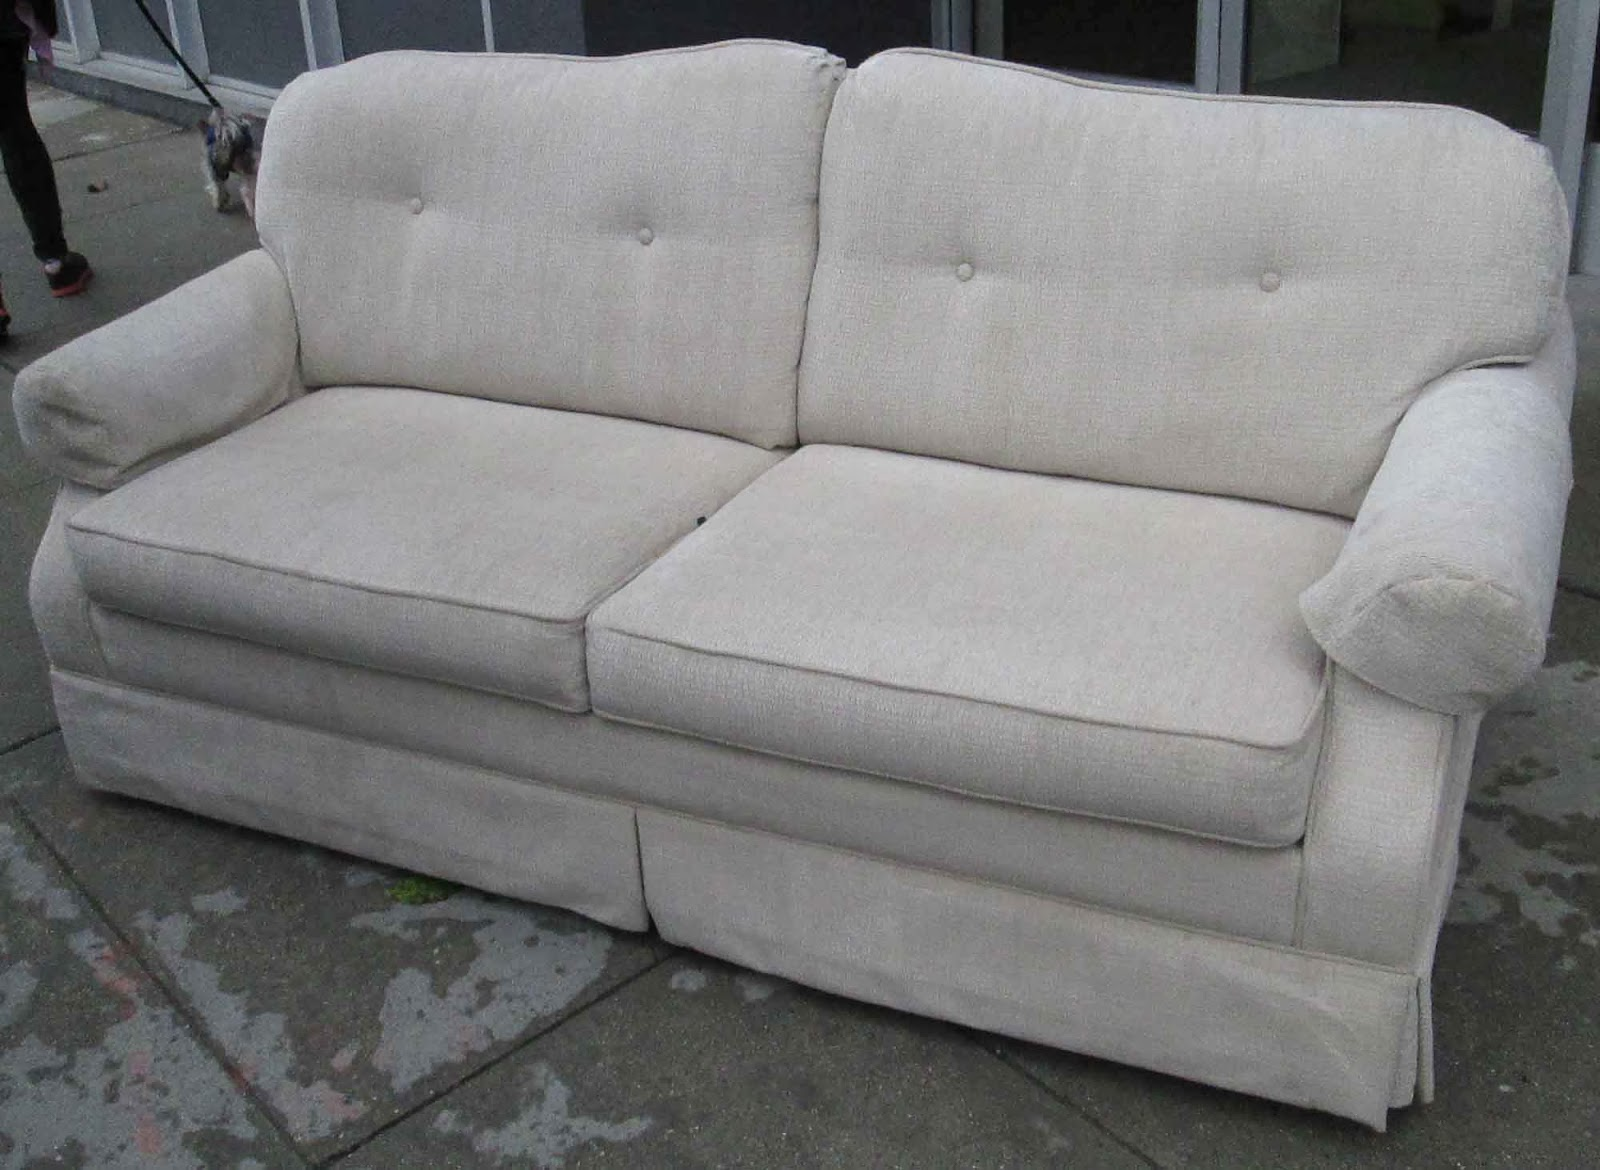 Uhuru Furniture Collectibles Sold Small Sofa Sleeper 150